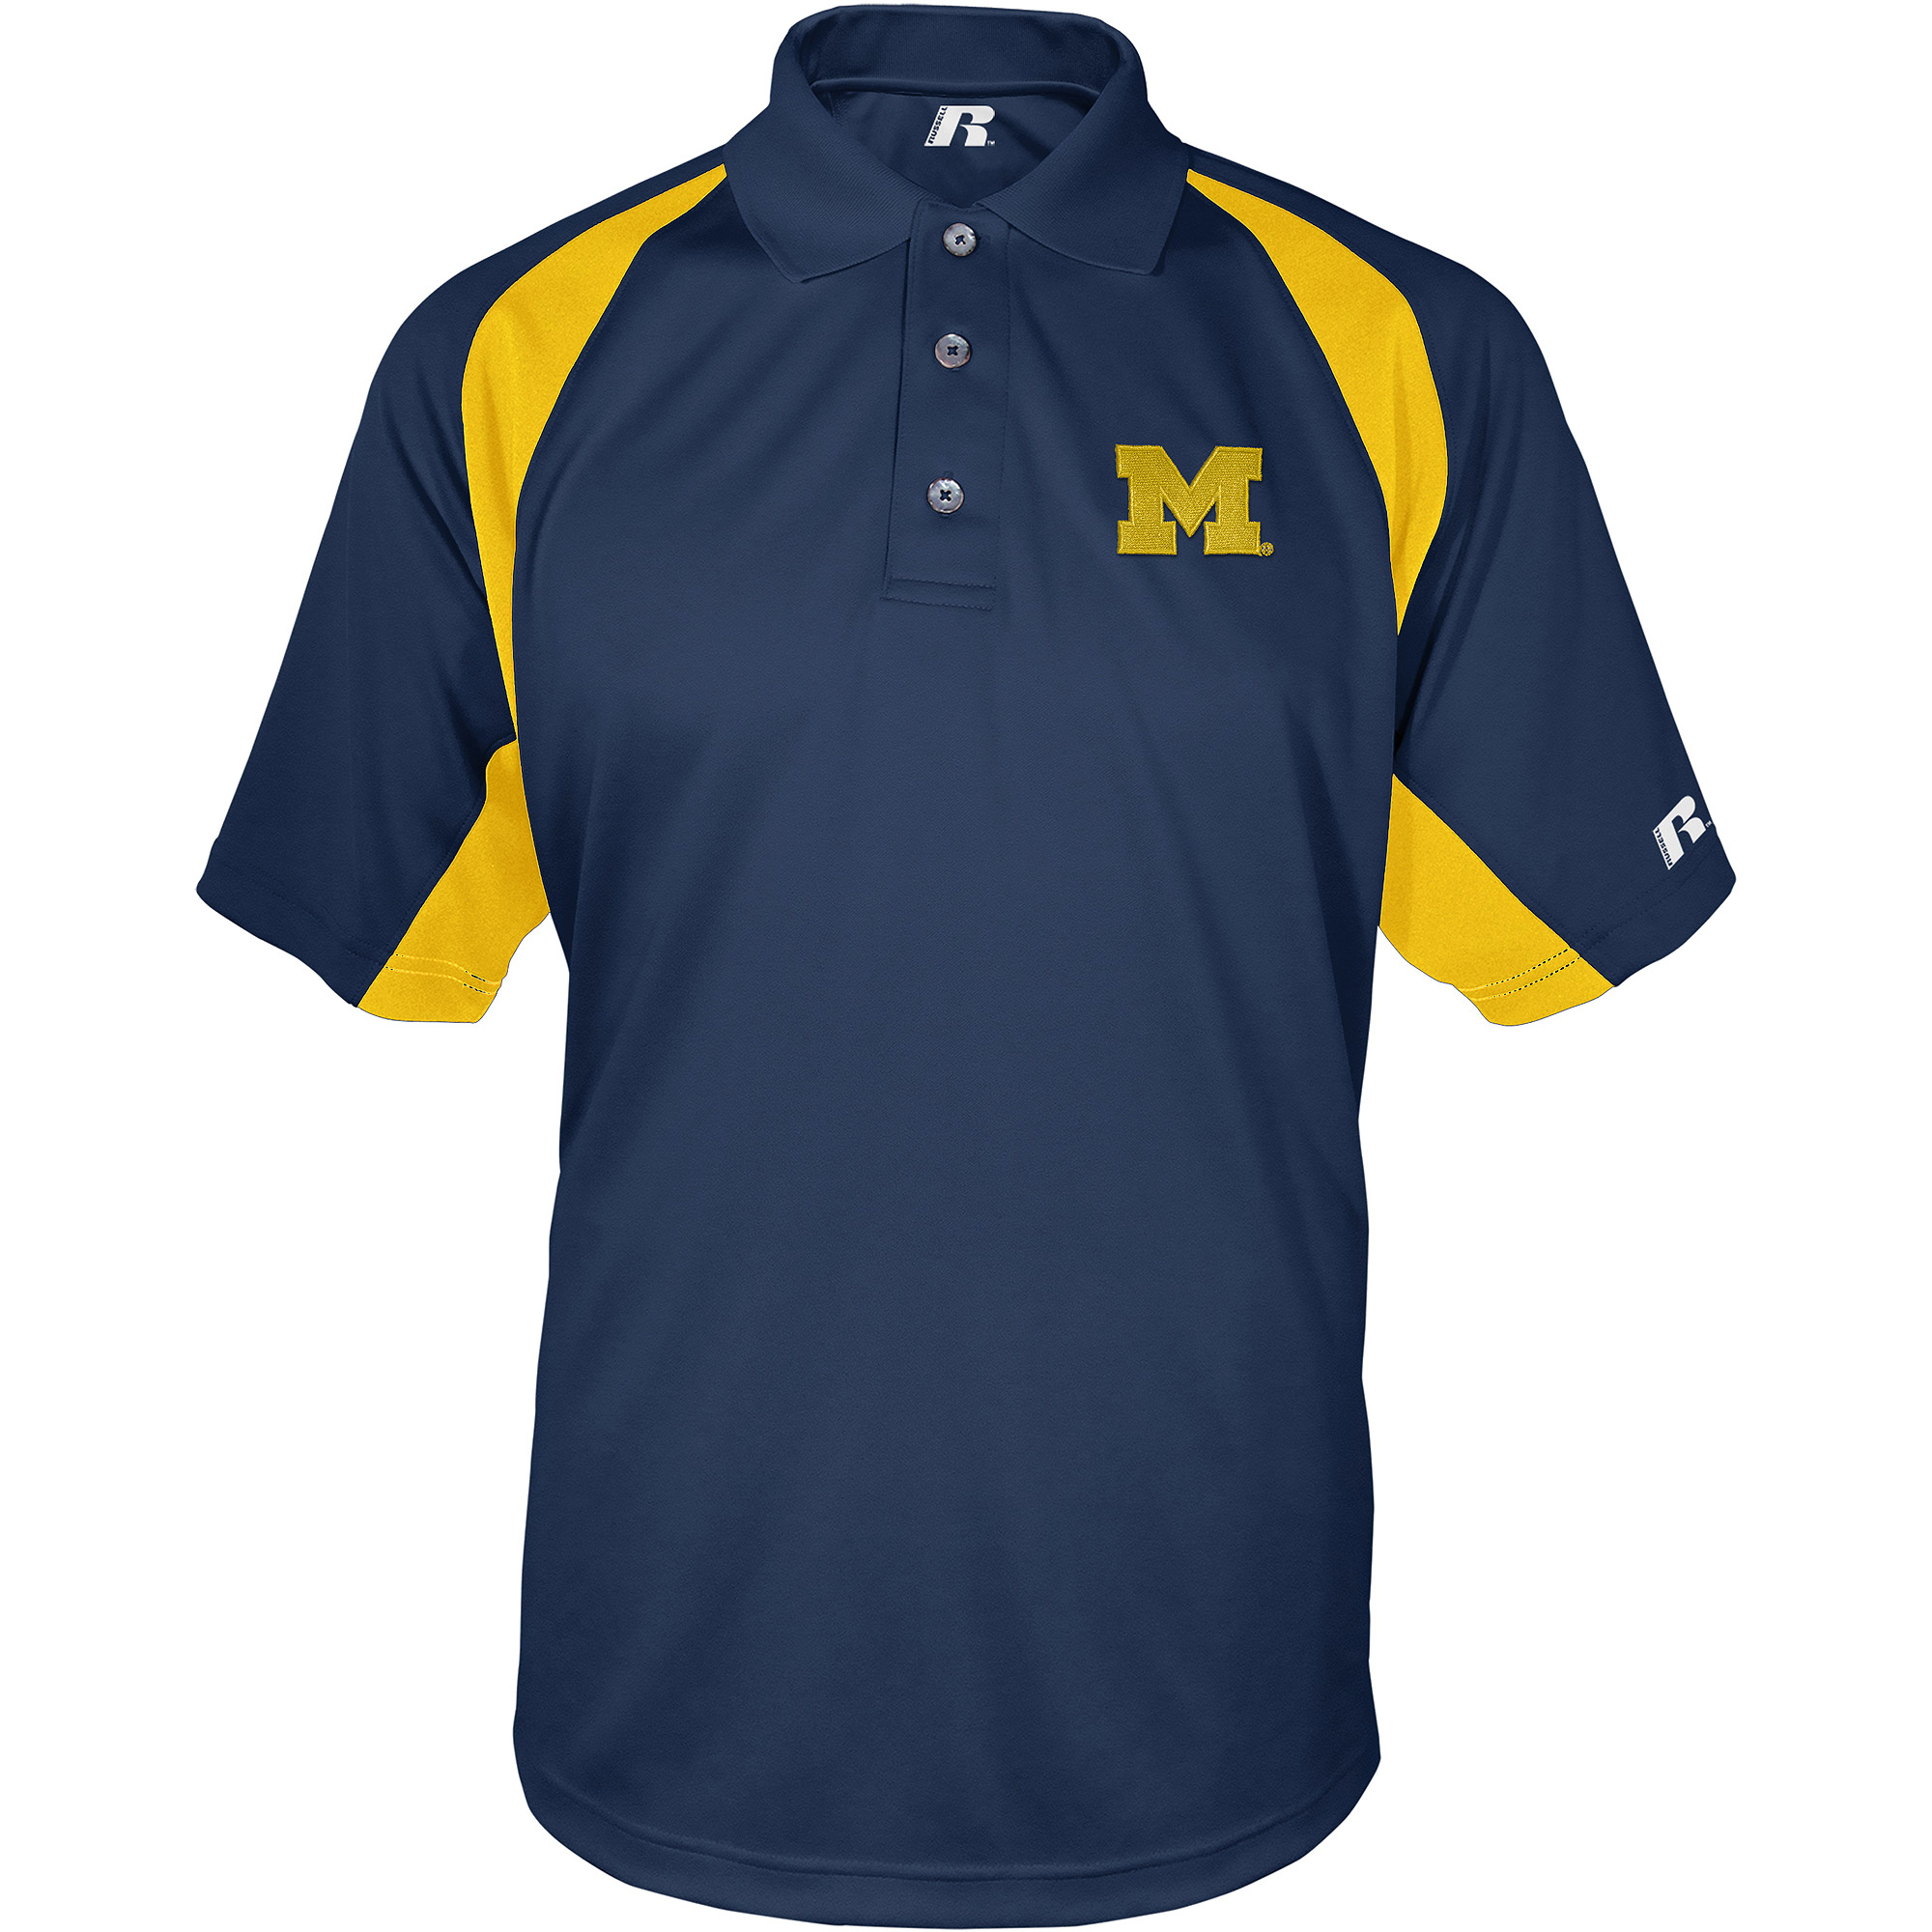 Russell NCAA Michigan Wolverines, Men's Synthetic Polo